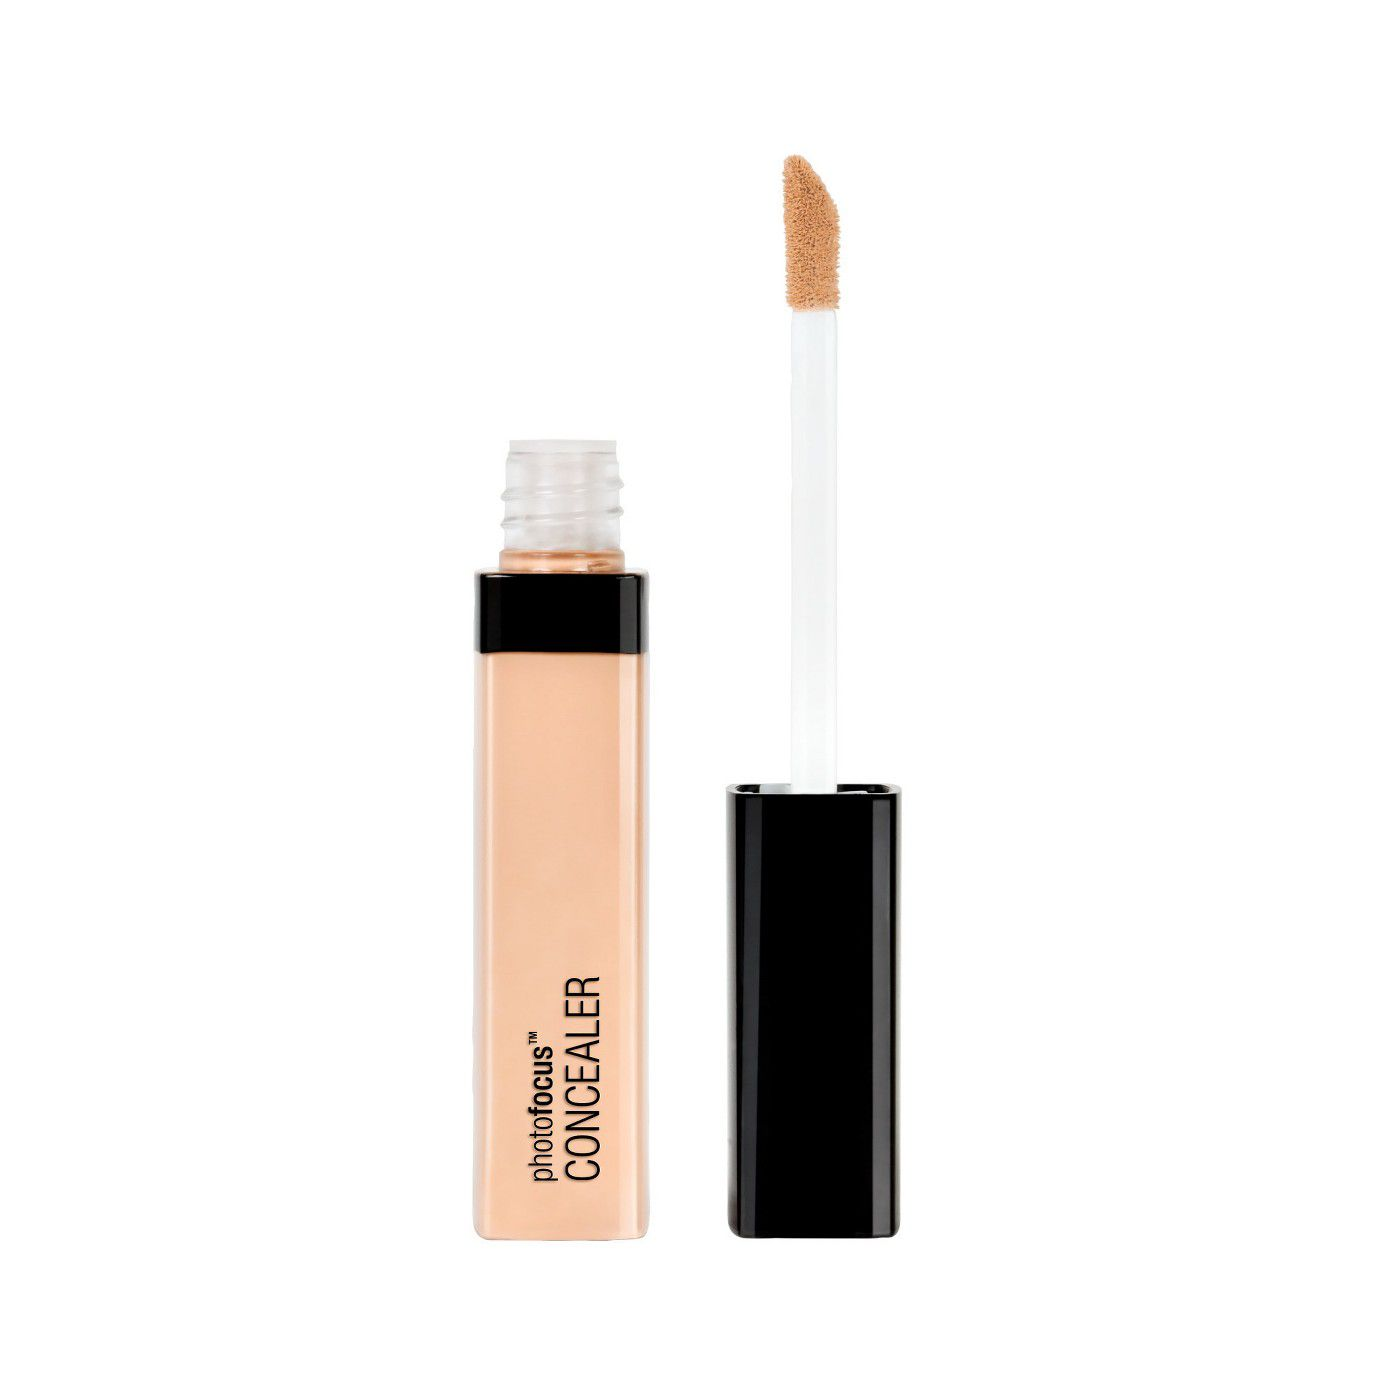 The 16 Best Concealers Of 2020